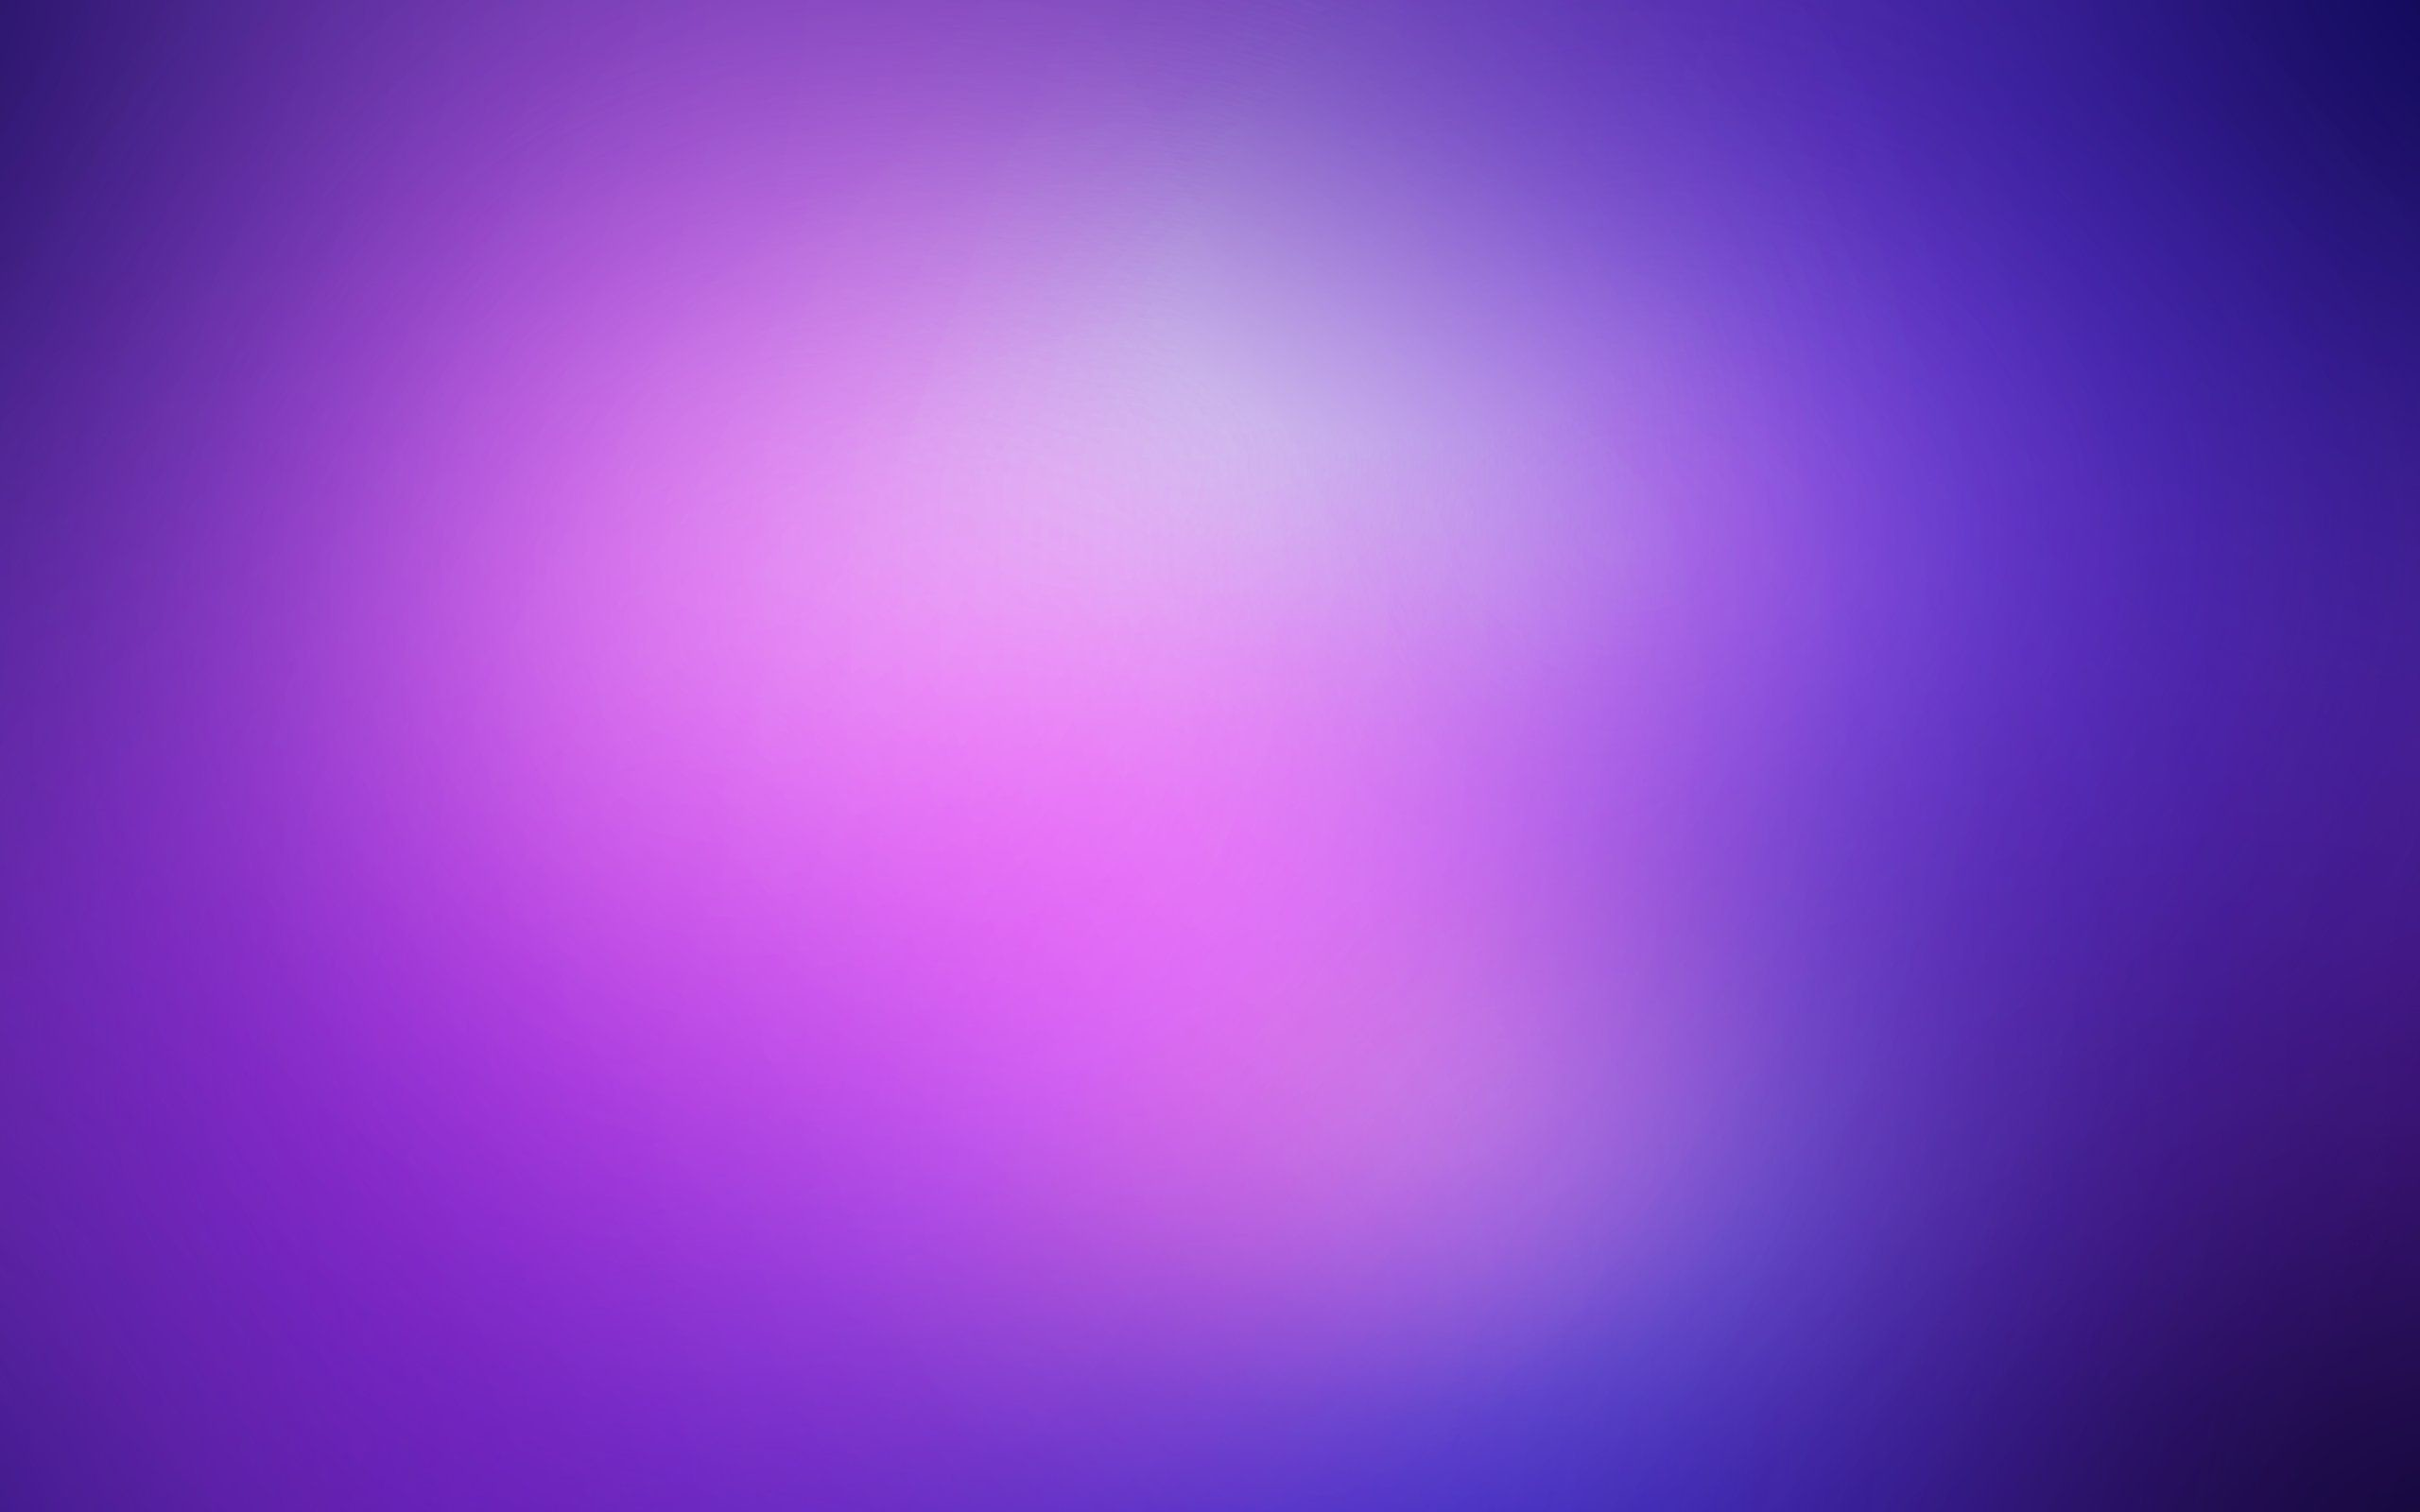 2560x1600 Solid Color Backgrounds - 1792772